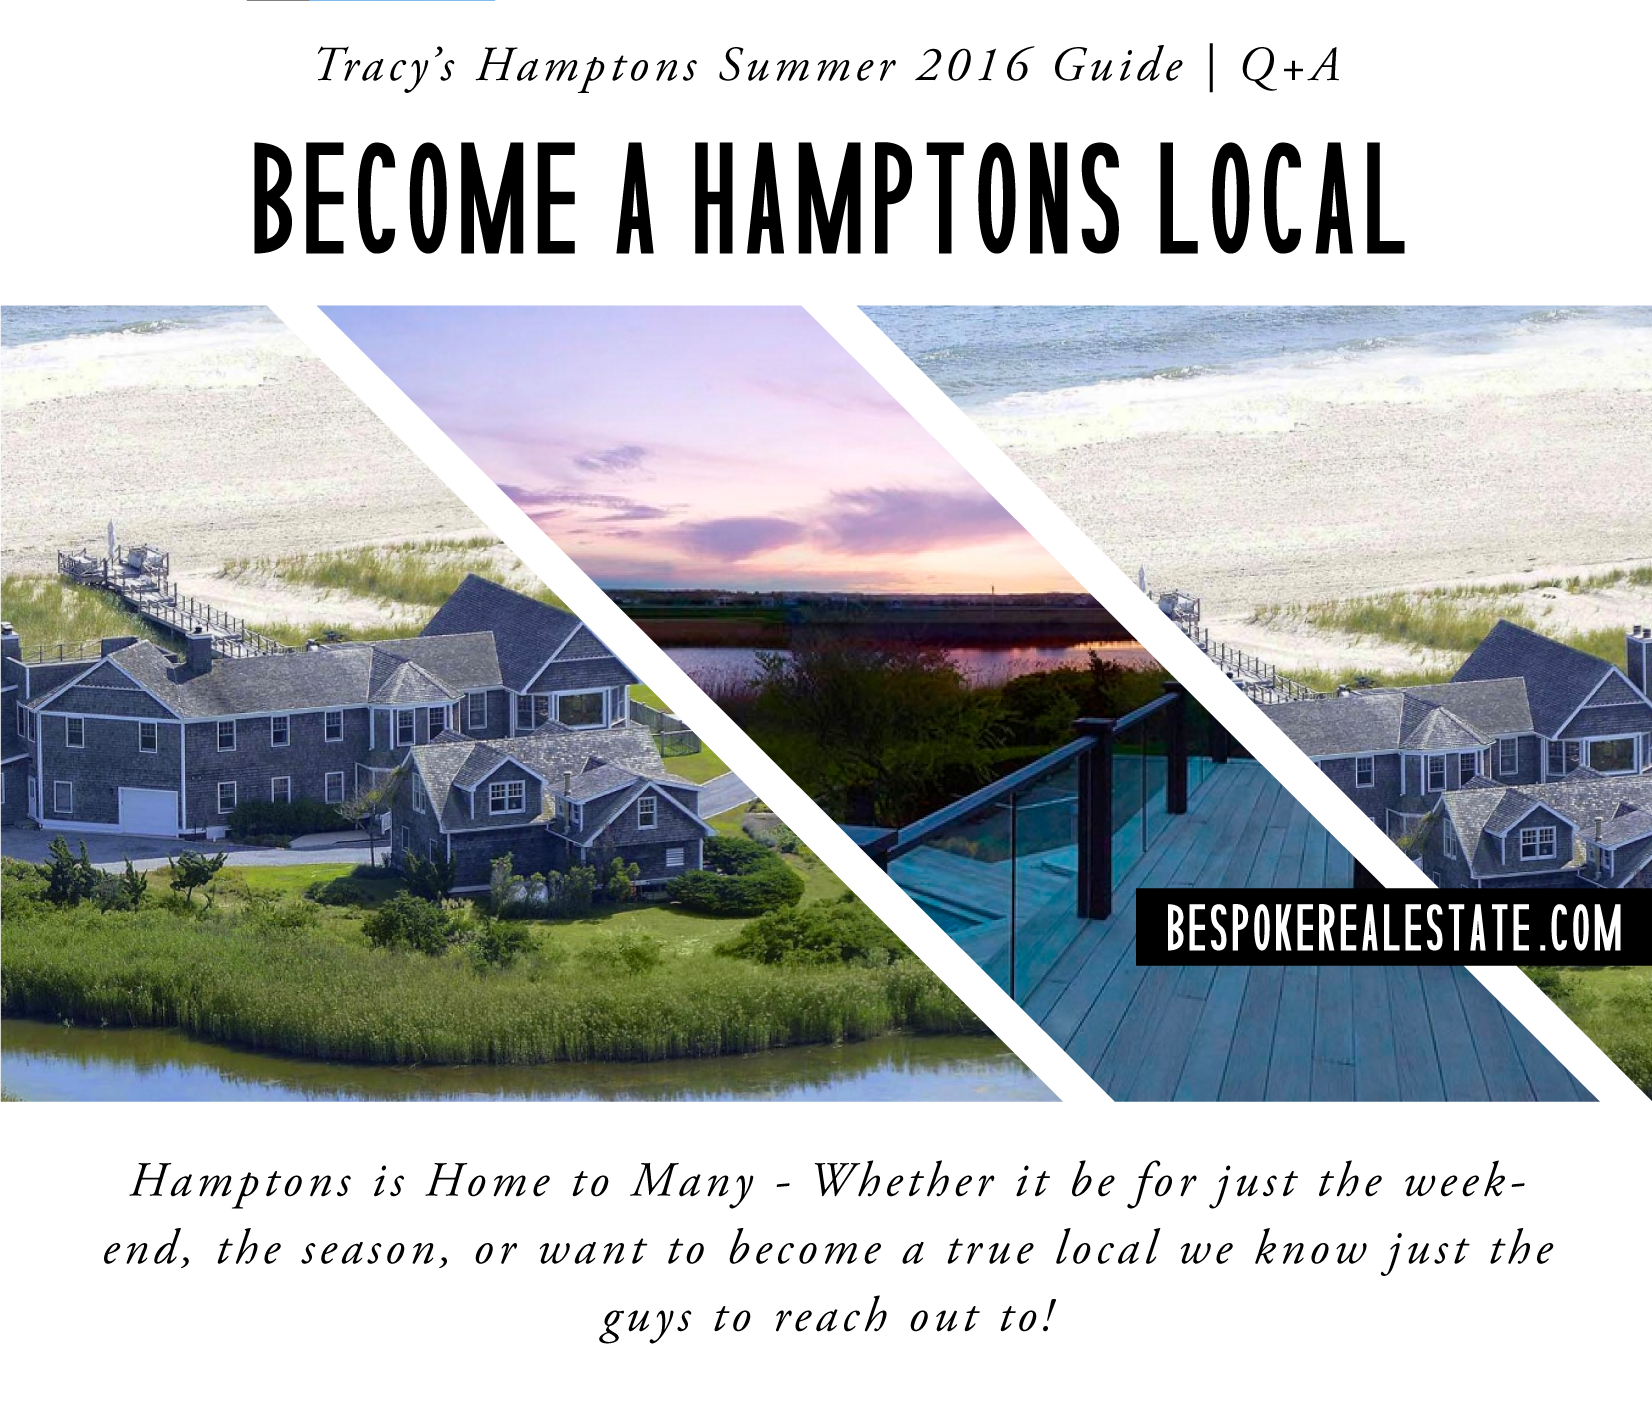 hamptonslocal